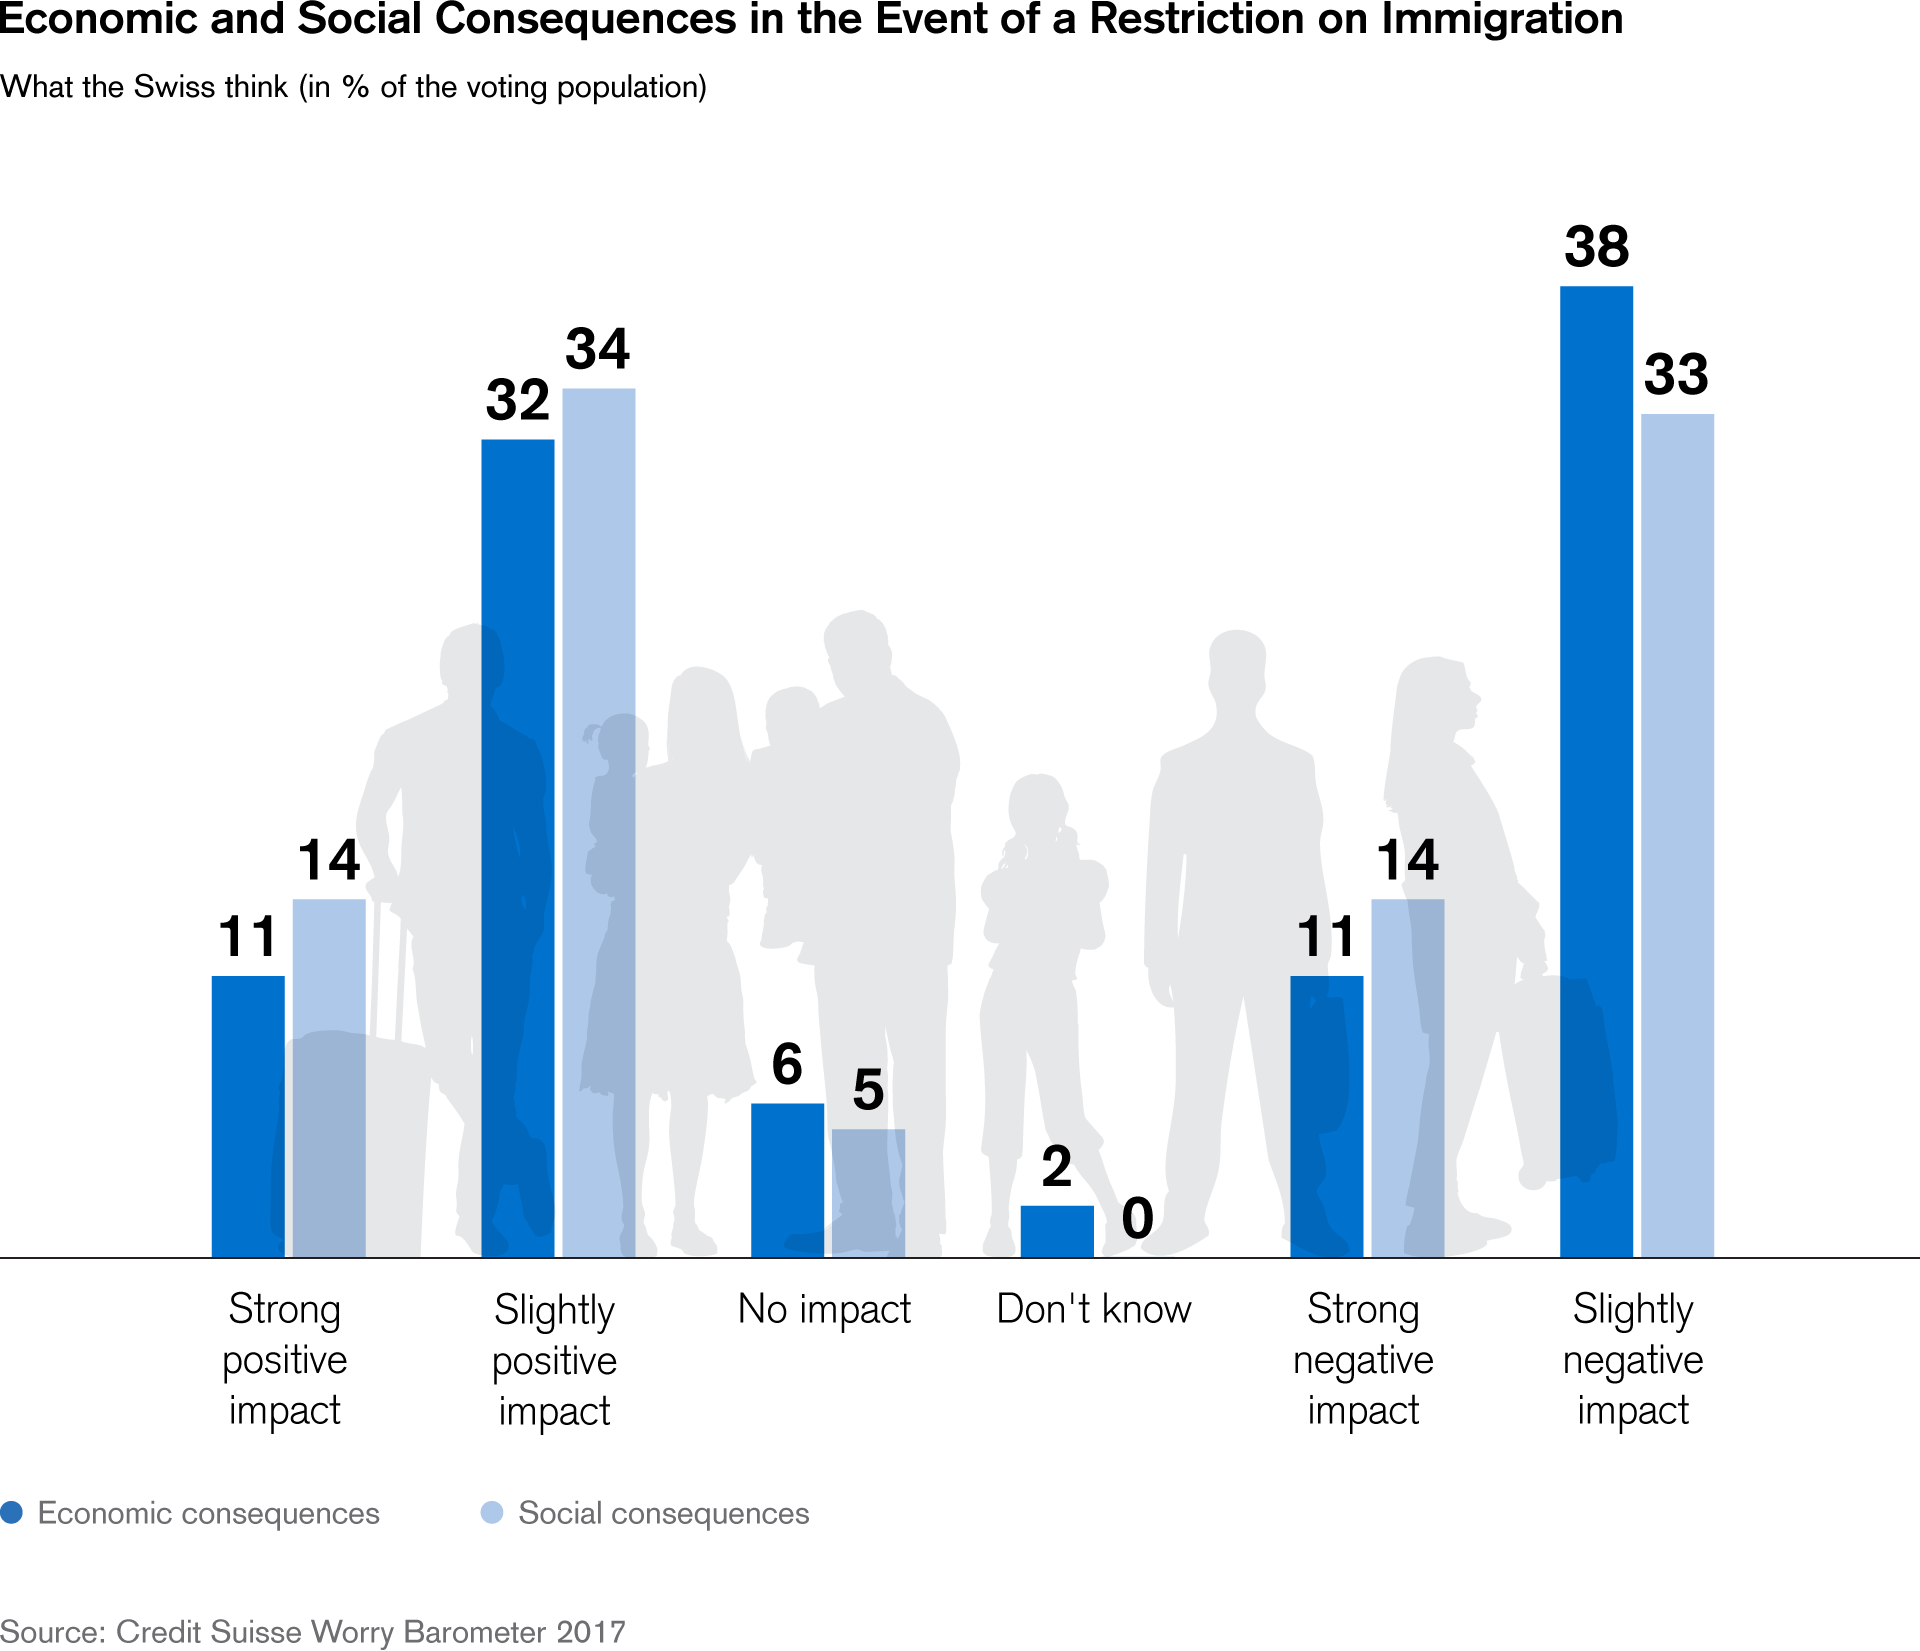 Economic and Social Consequences in the Event of a Restriction on Immigration